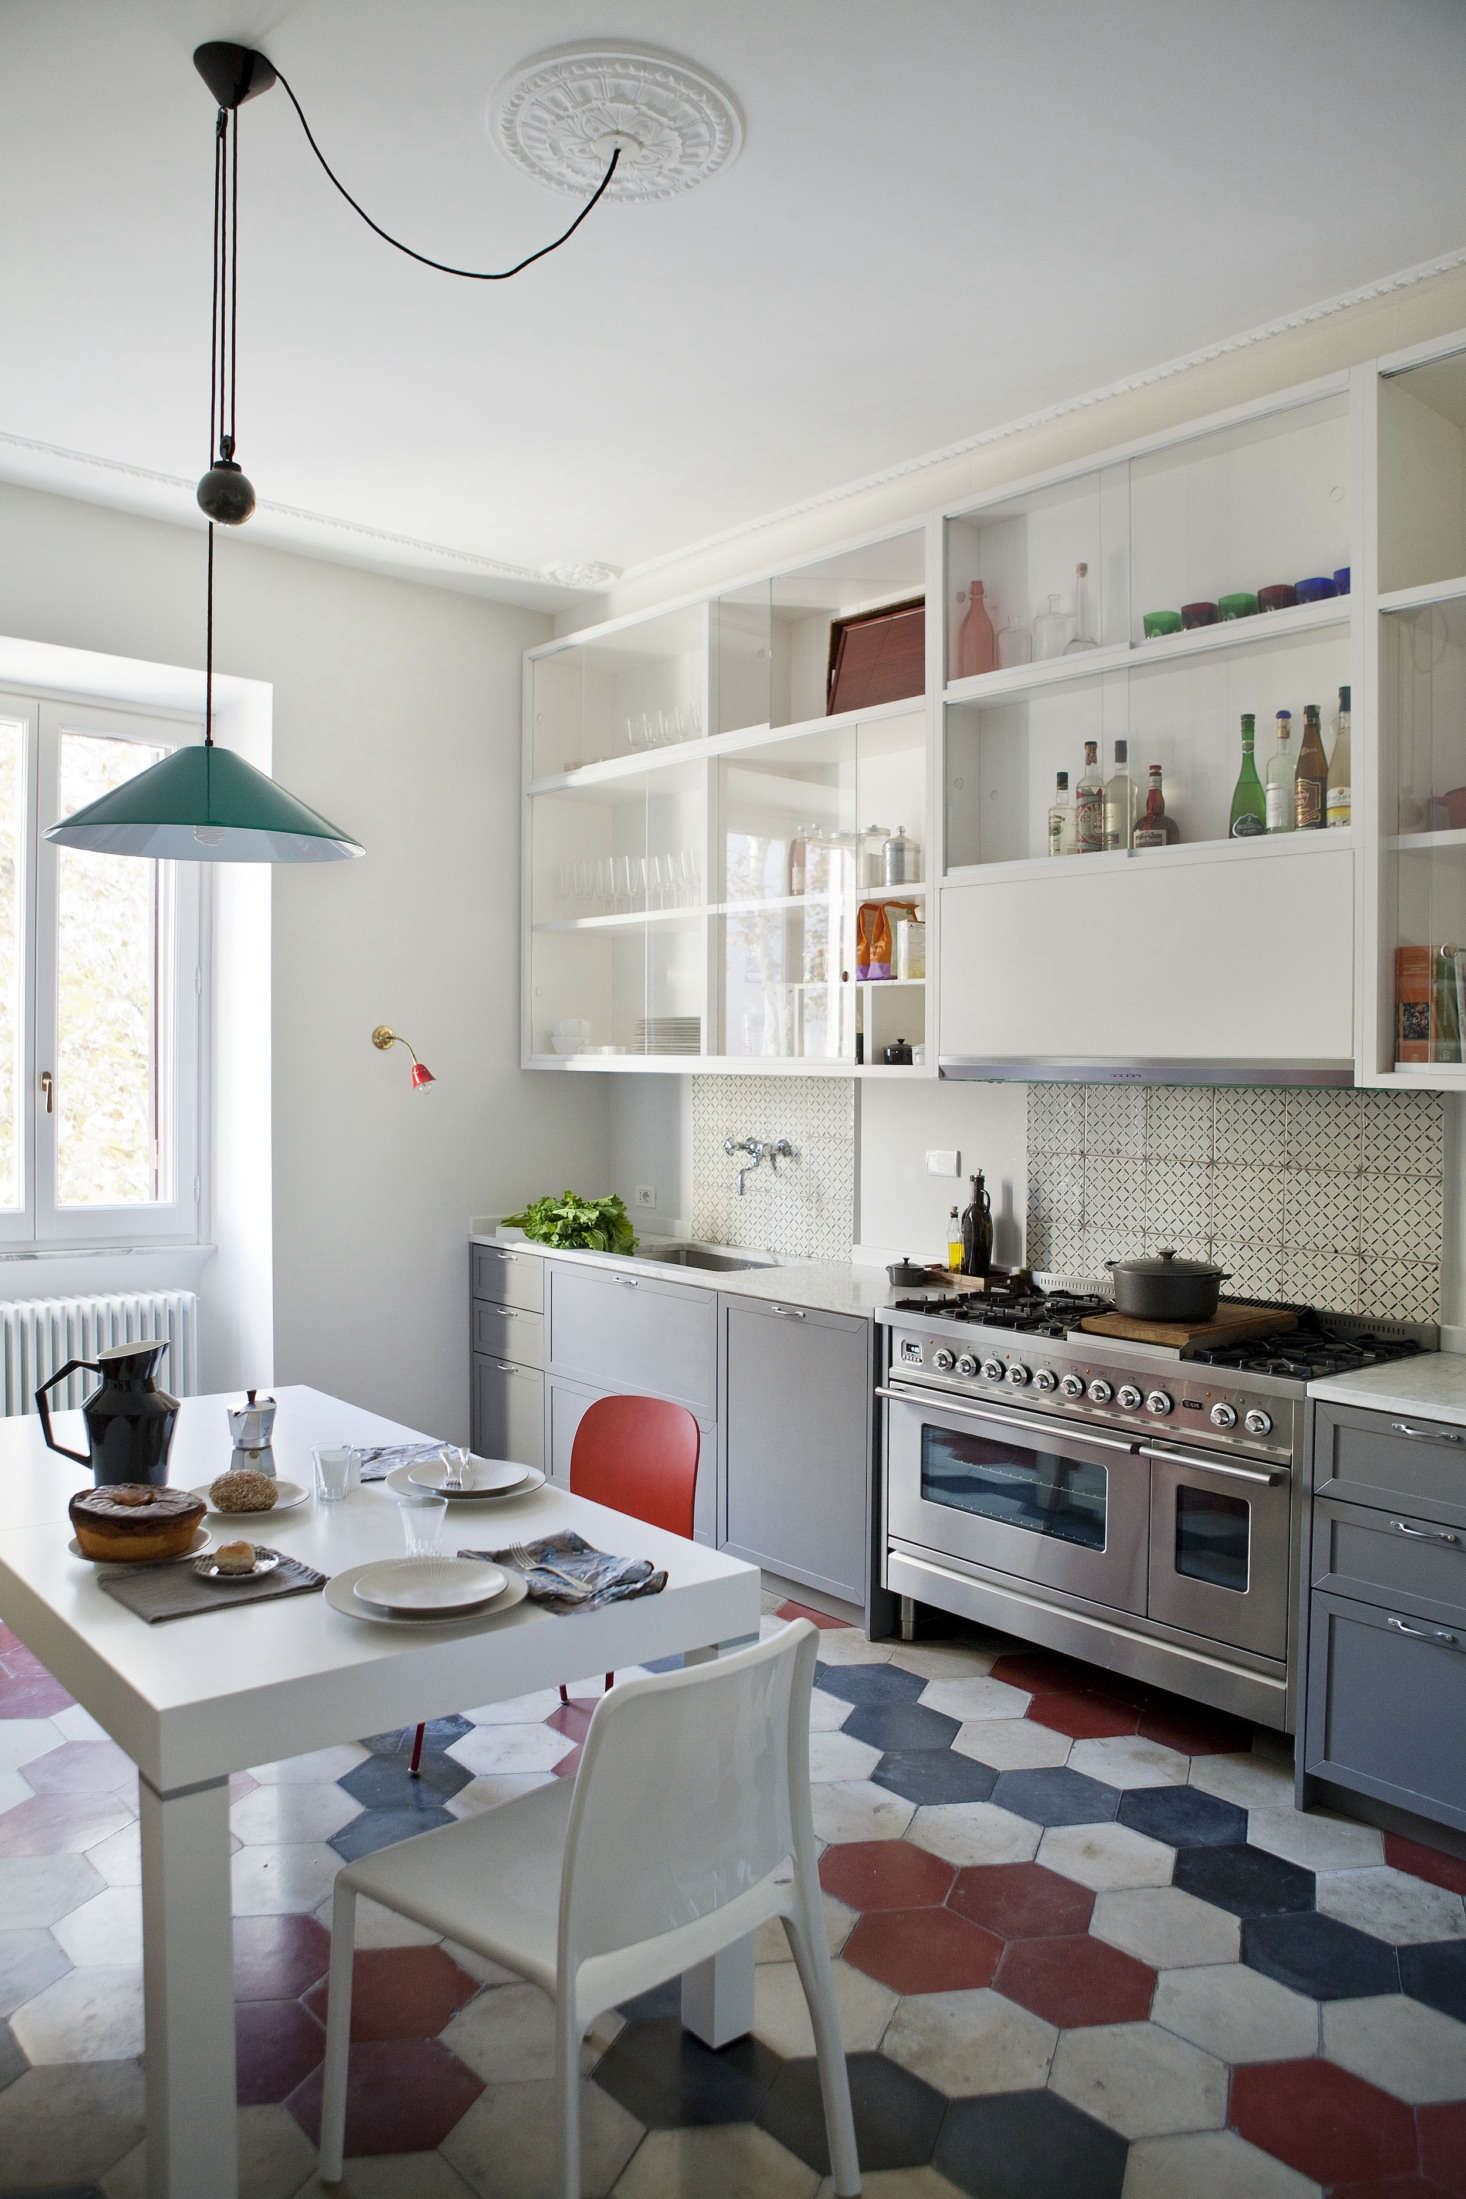 In the kitchen, a reclaimed cement-tile floor sets the stage for a motif of dusty reds and blues that appears throughout the house. &#8